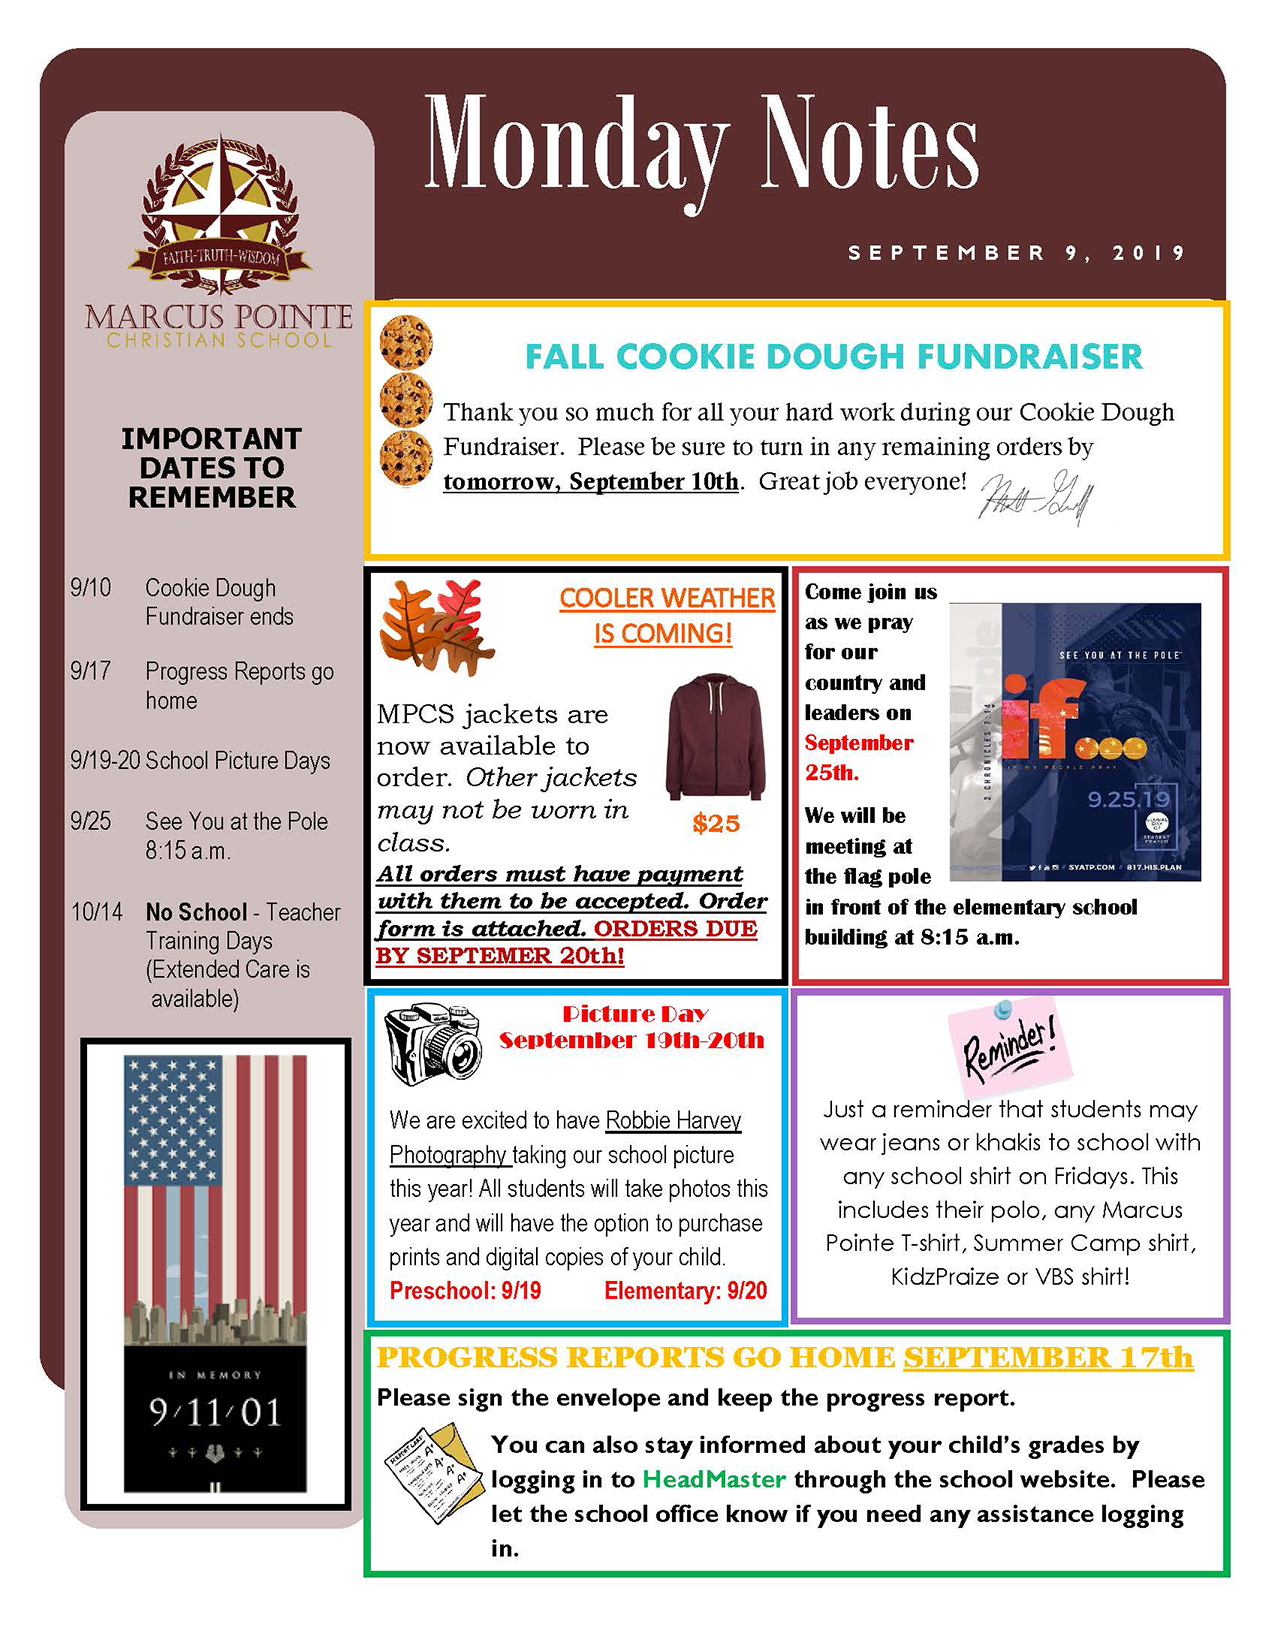 Weekly Notes for September 9, 2019